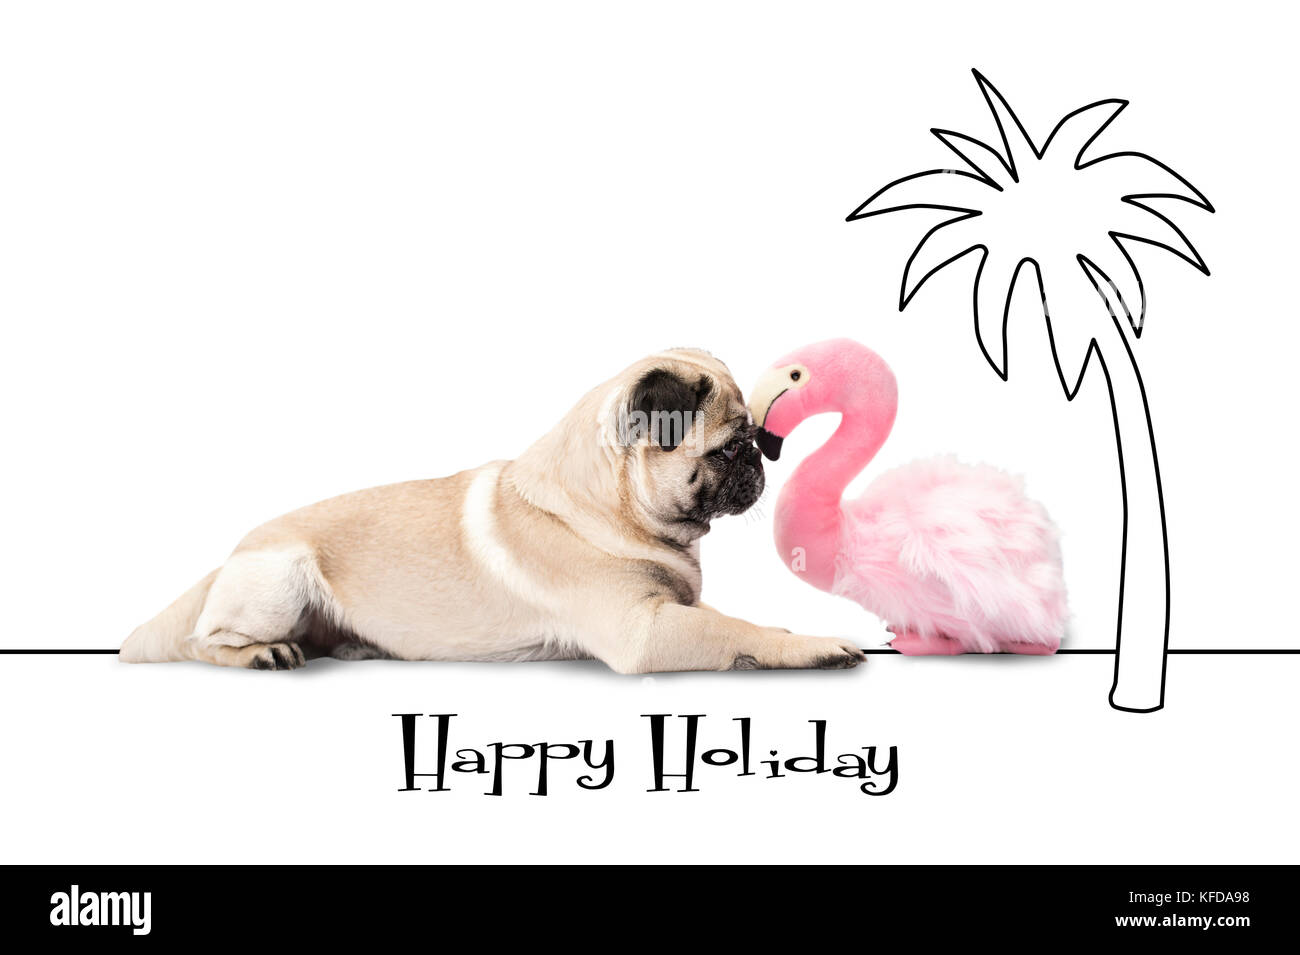 Happy Holliday - Pug dog and flamingo lie under a palm - Stock Image